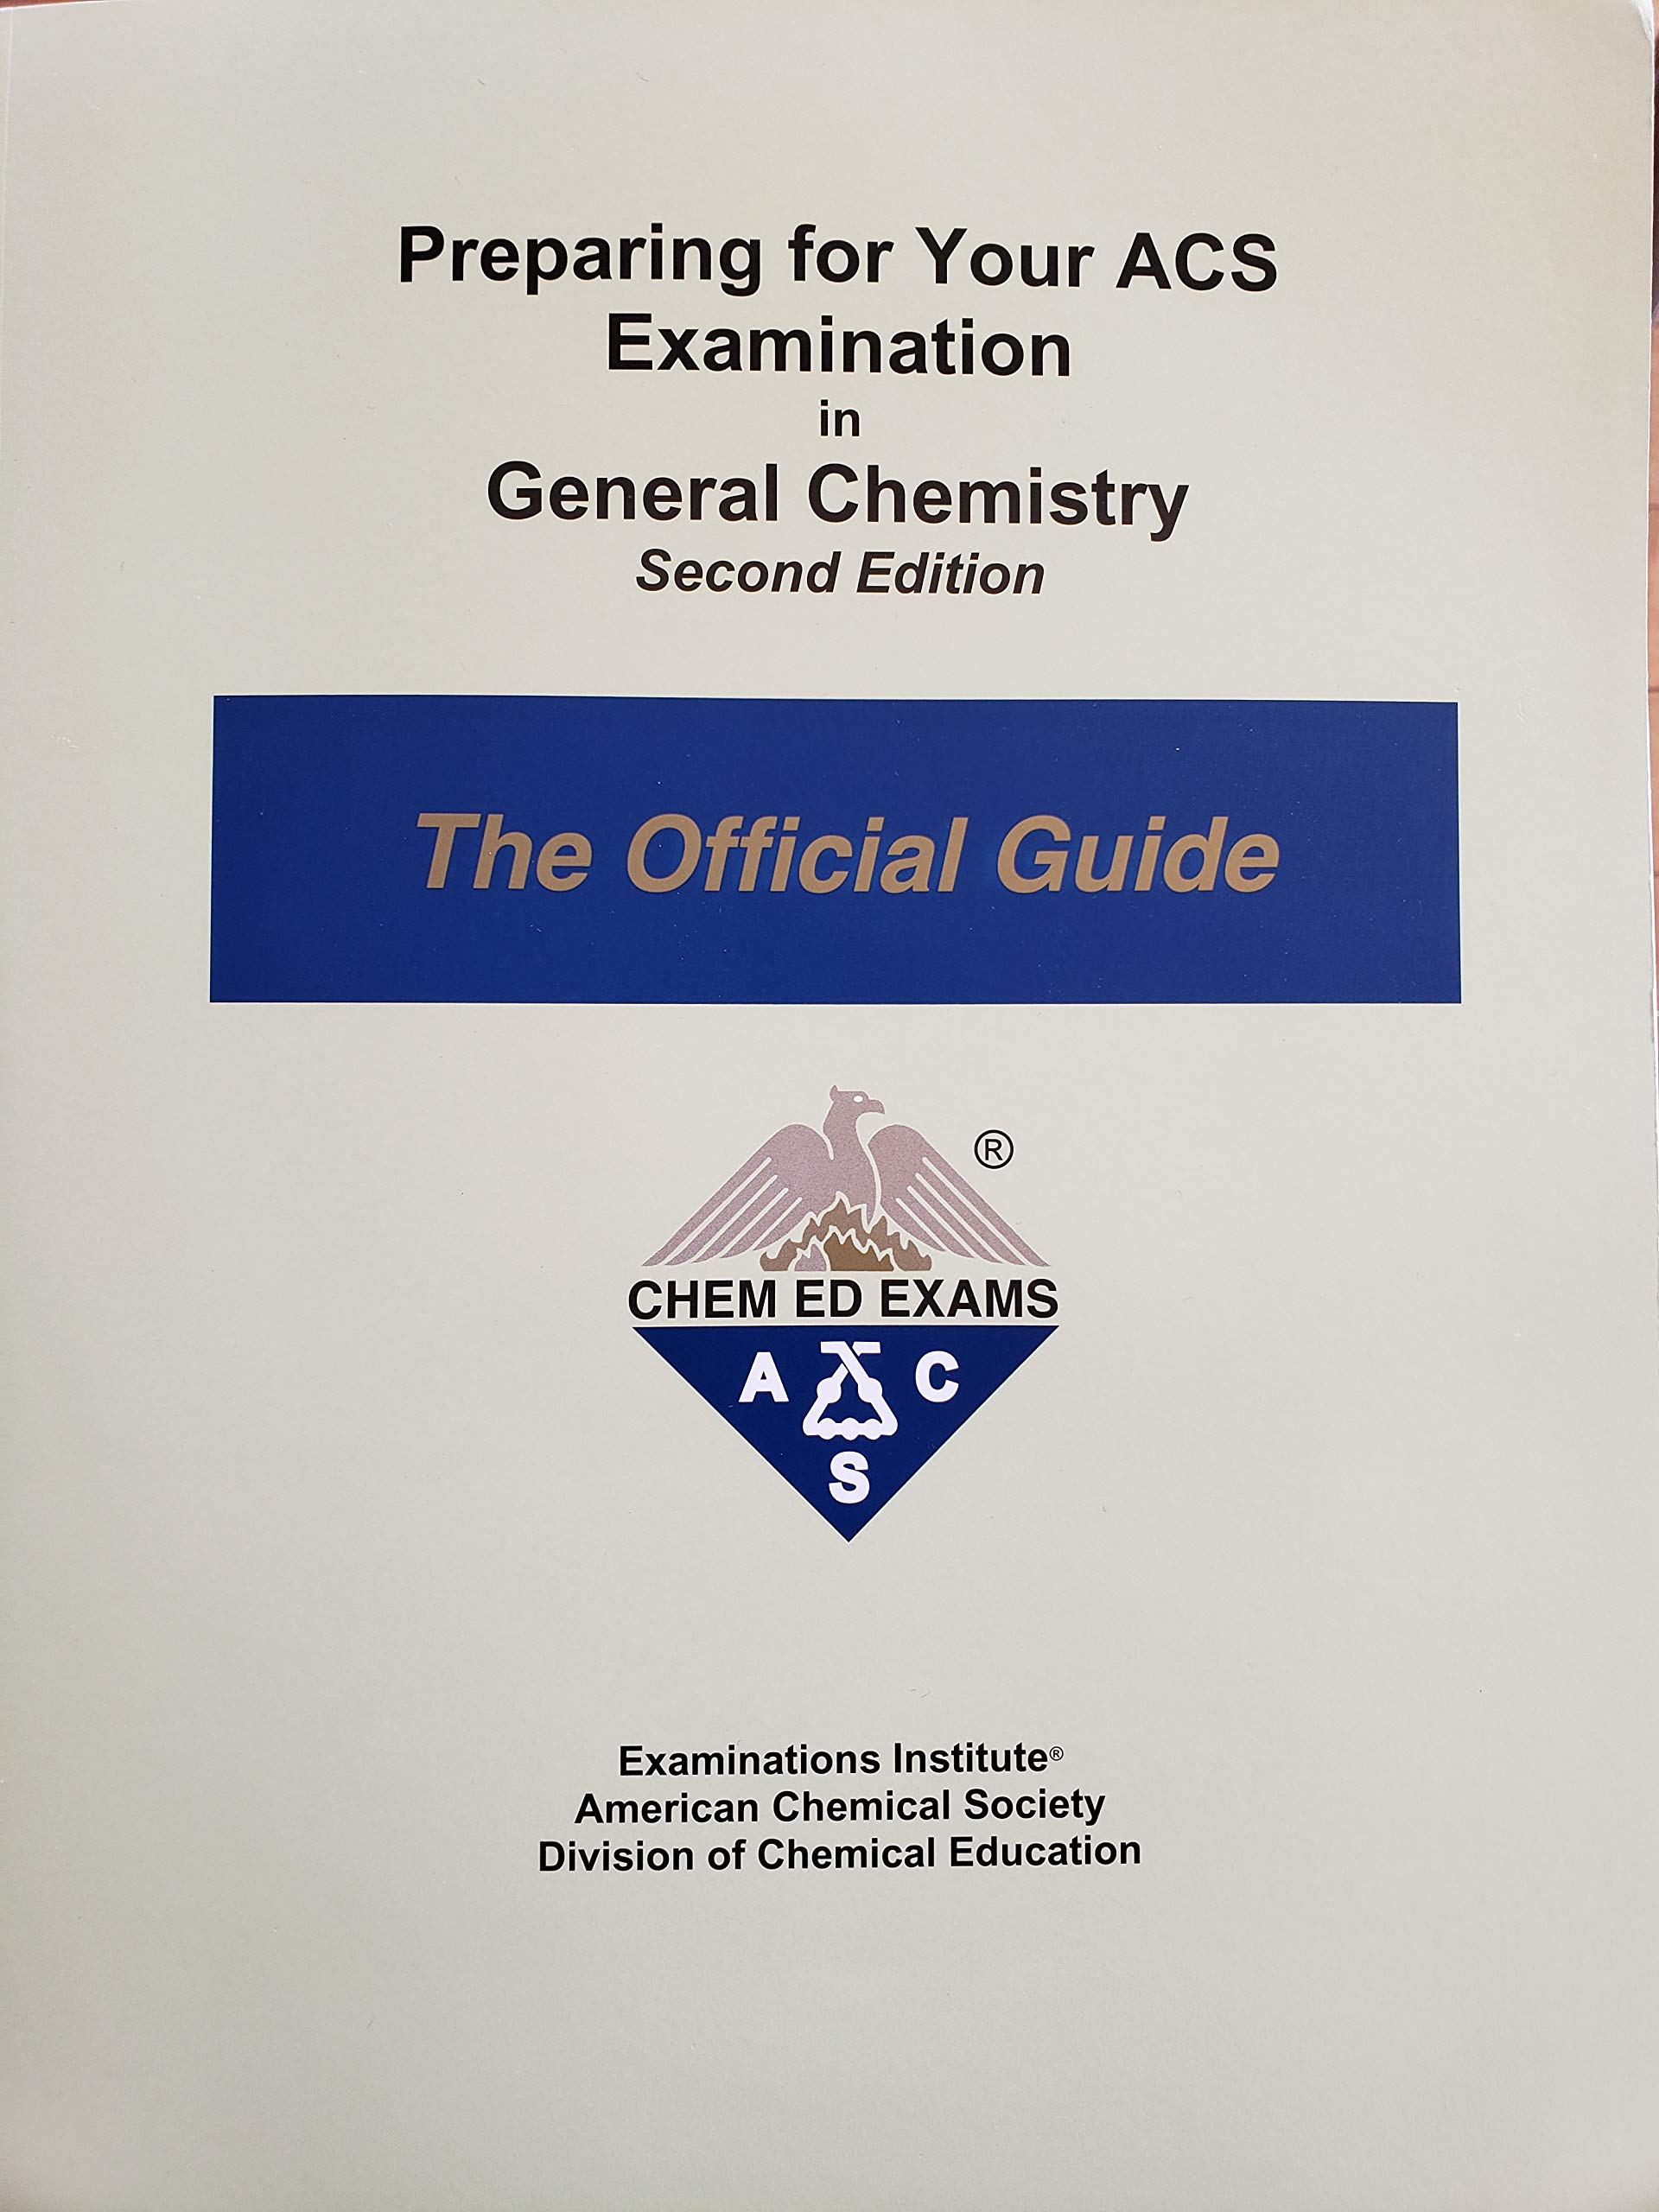 Preparing For Your Acs Examination In General Chemistry The Official Guide American Chemical Society Division Of Chemical Education Examinations Institute 9781732776401 Amazon Com Books